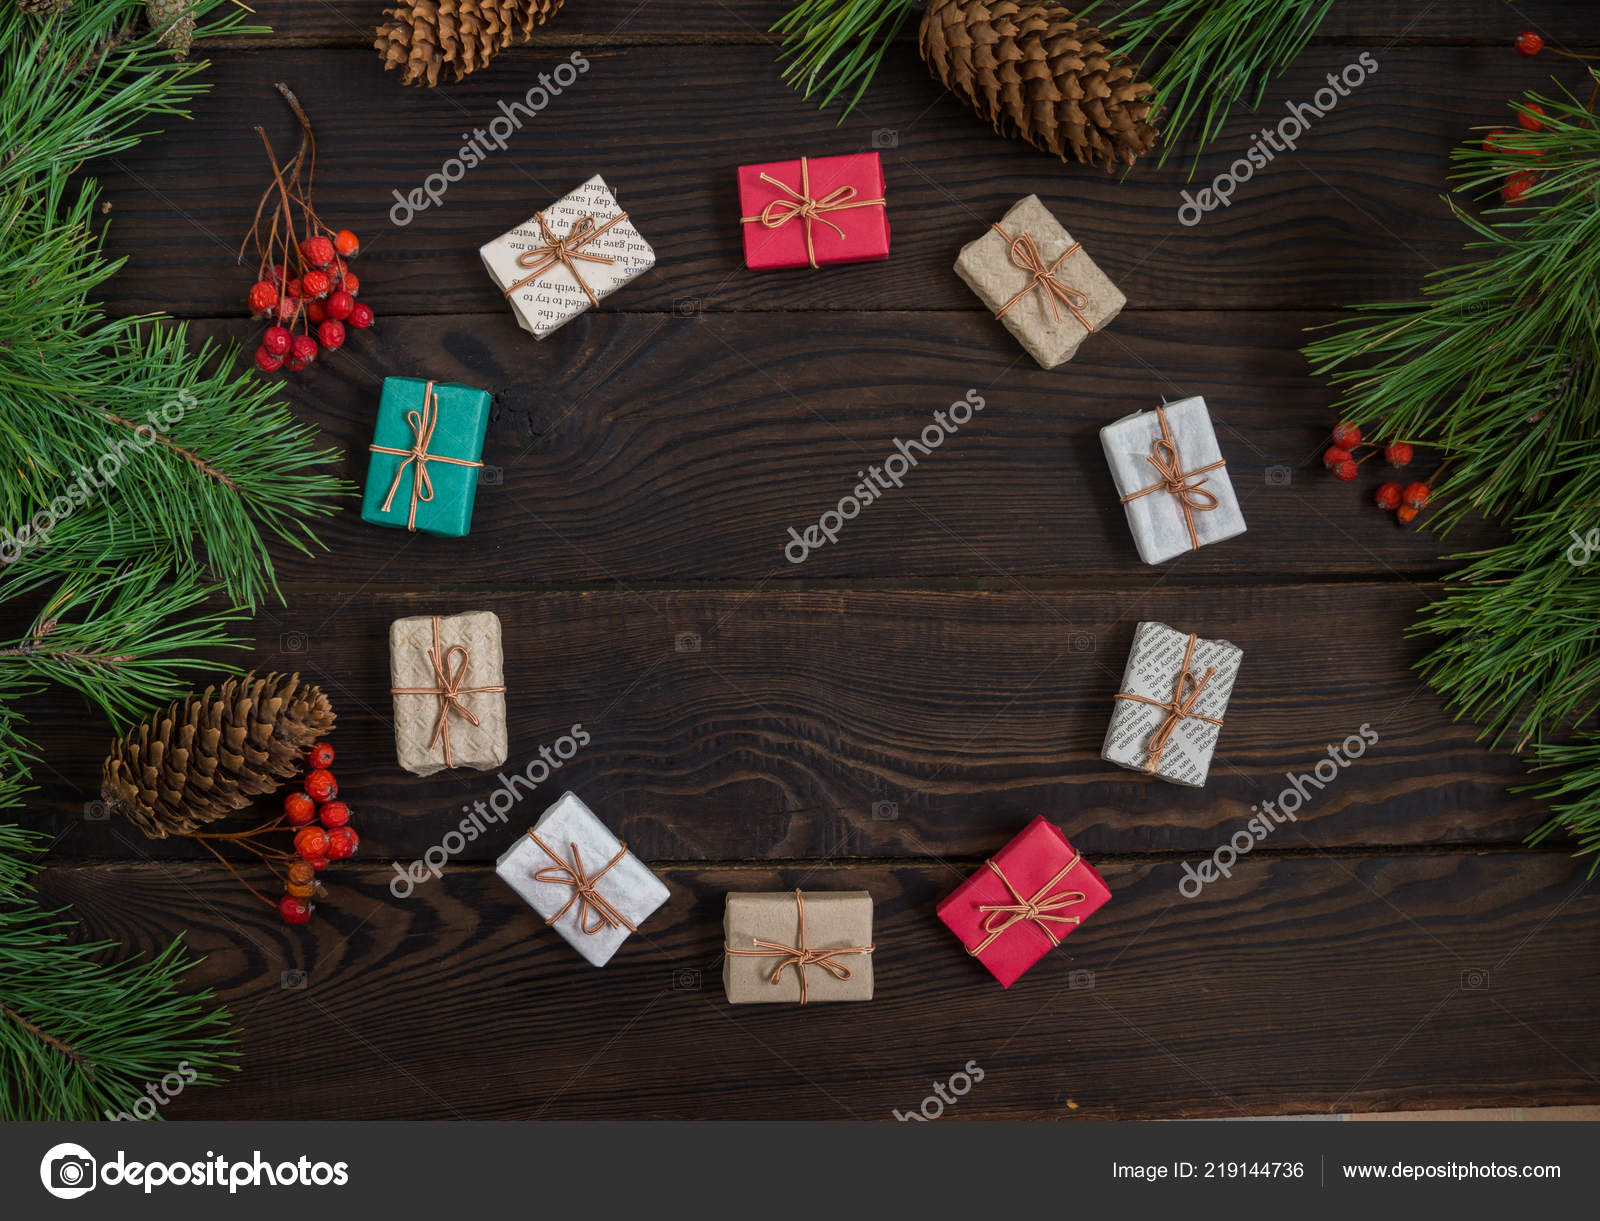 Multi Colored Boxes Christmas Gifts Pine Branches Wooden Surface